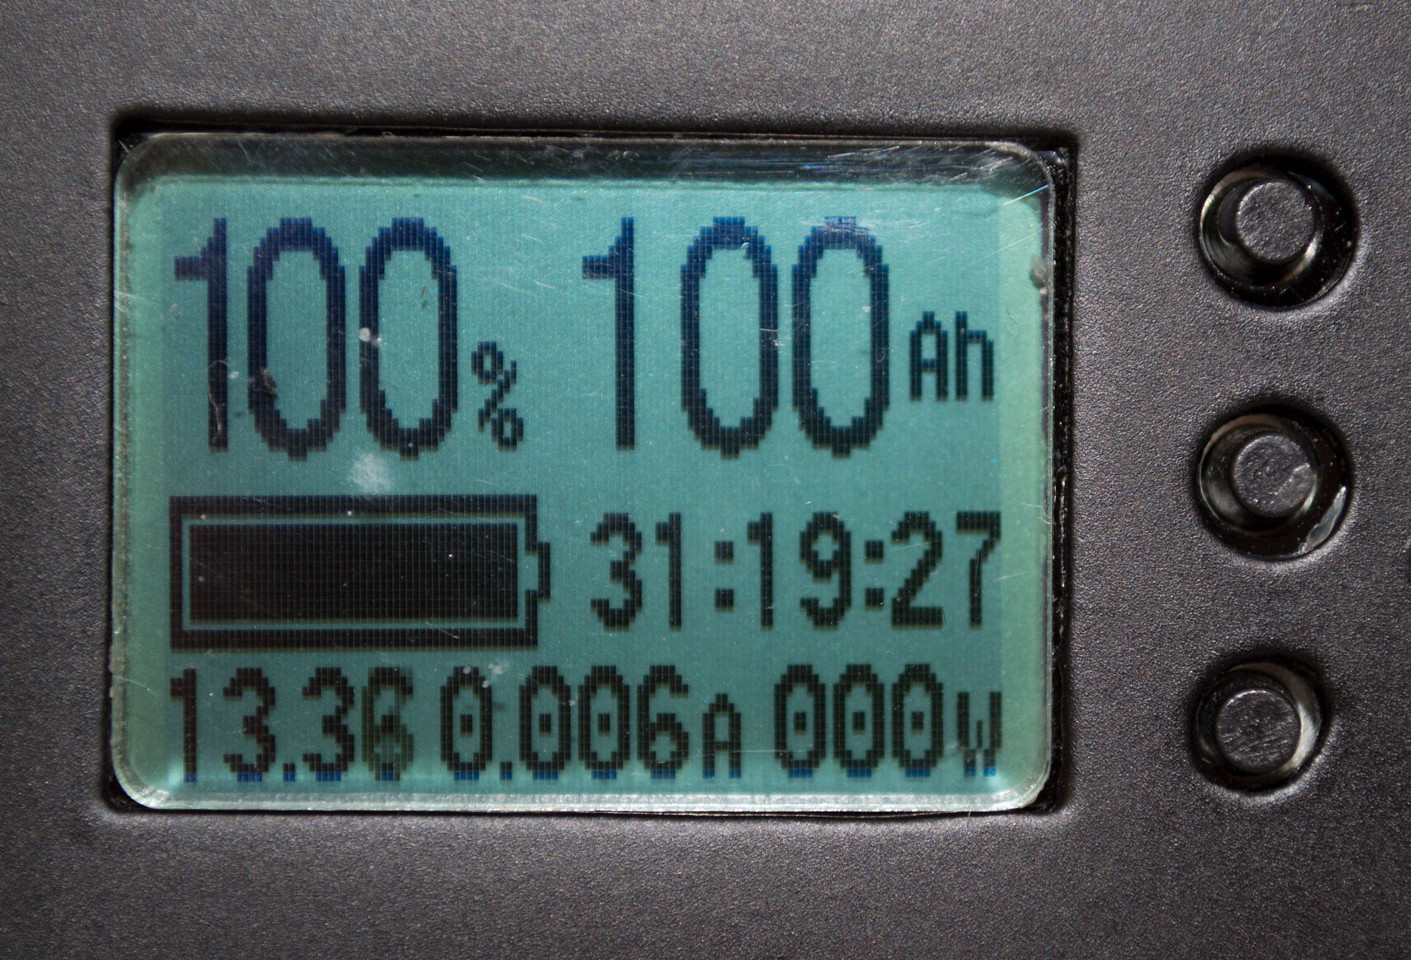 Close up of Ion-Ready State of Charge Display